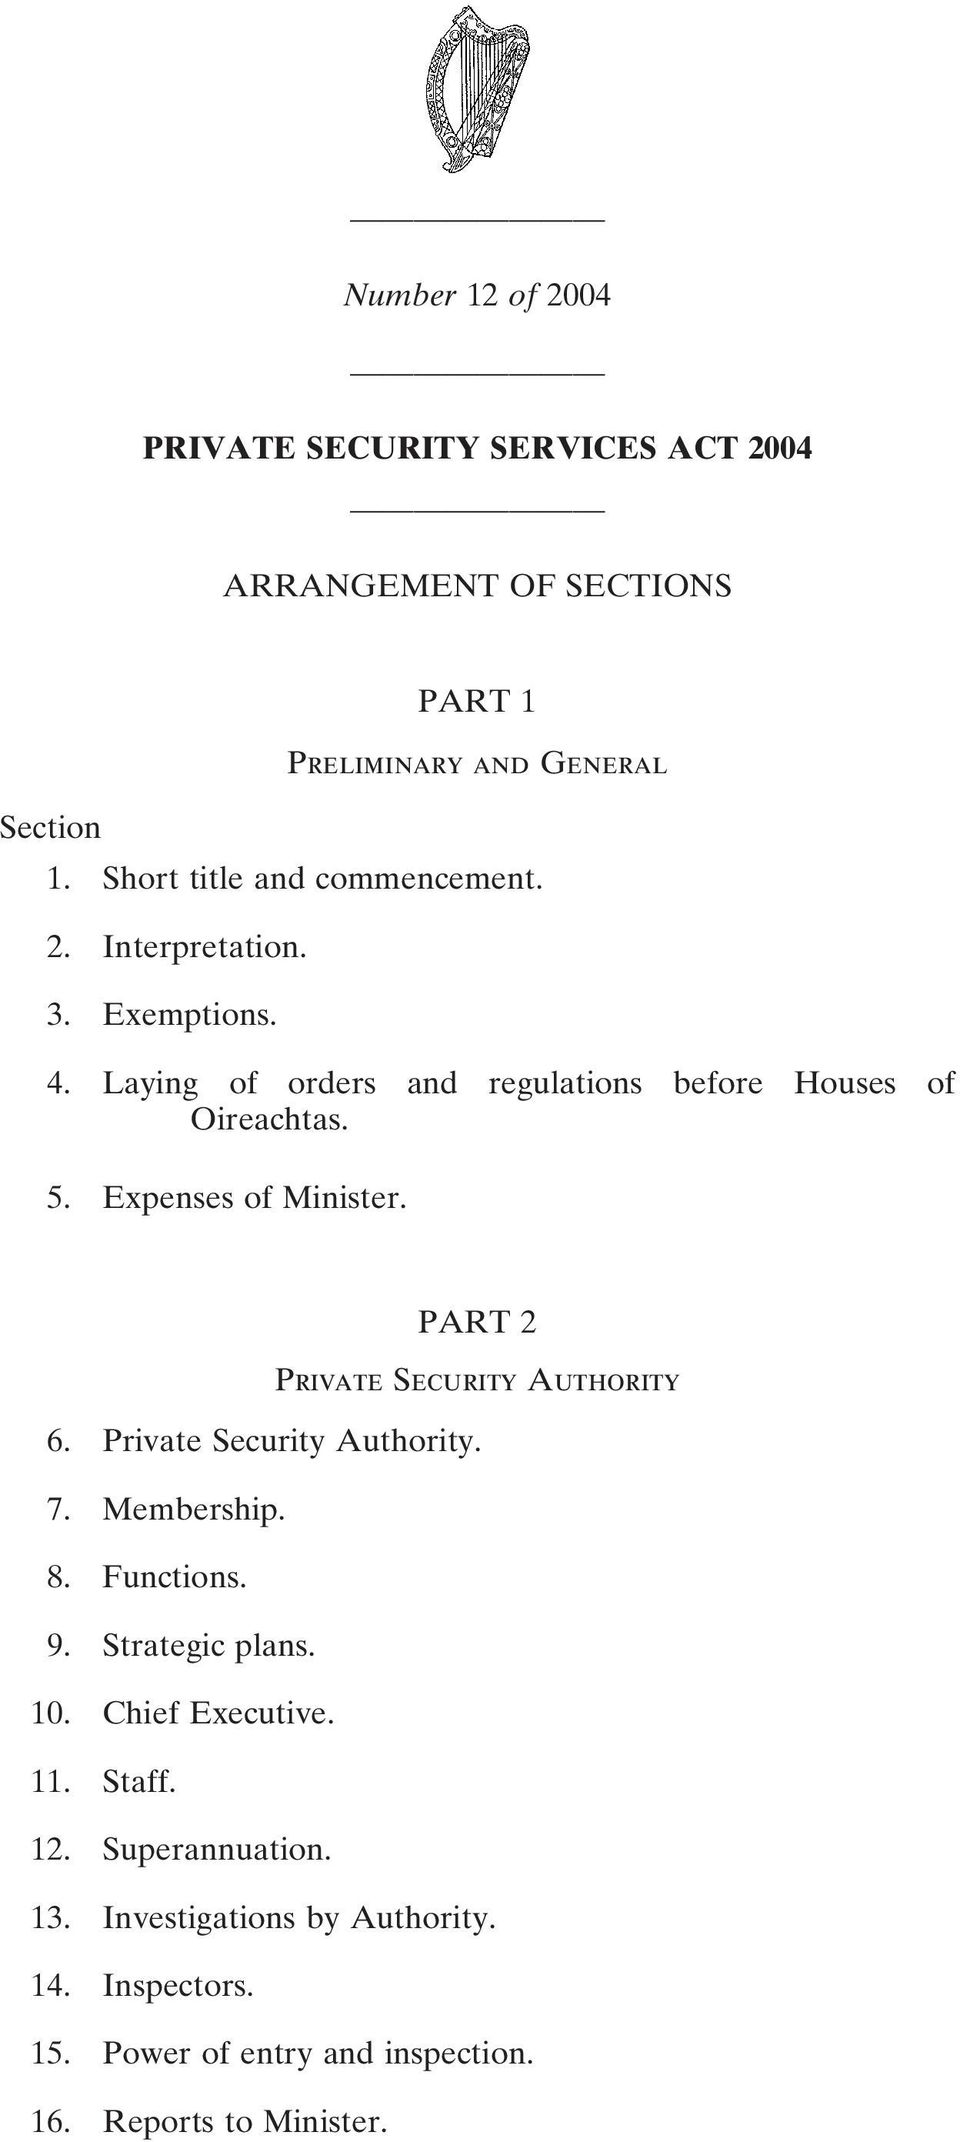 Expenses of Minister. PART 2 Private Security Authority 6. Private Security Authority. 7. Membership. 8. Functions. 9. Strategic plans.